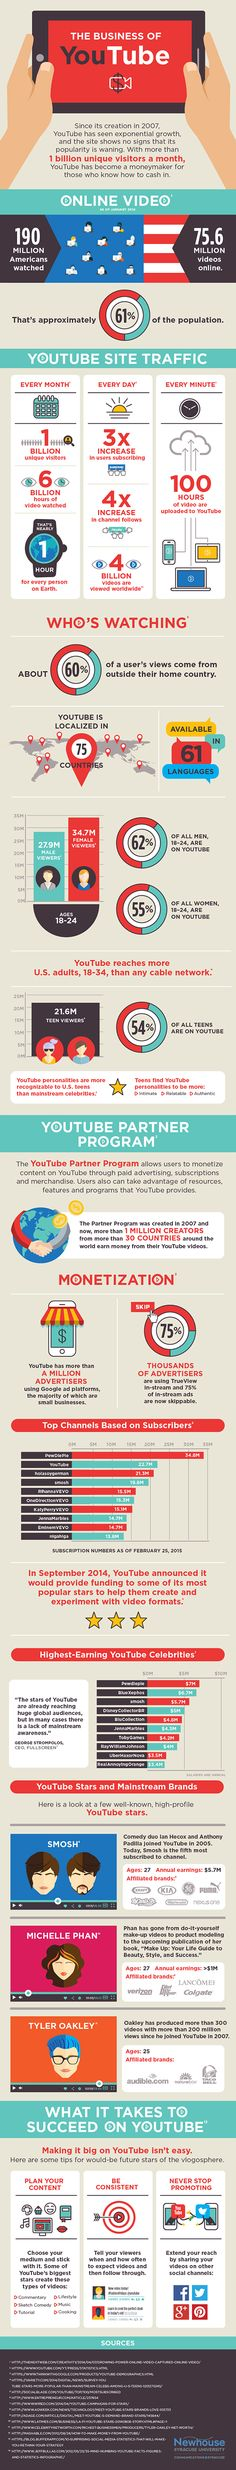 The Surprising Business of YouTube [Infographic]